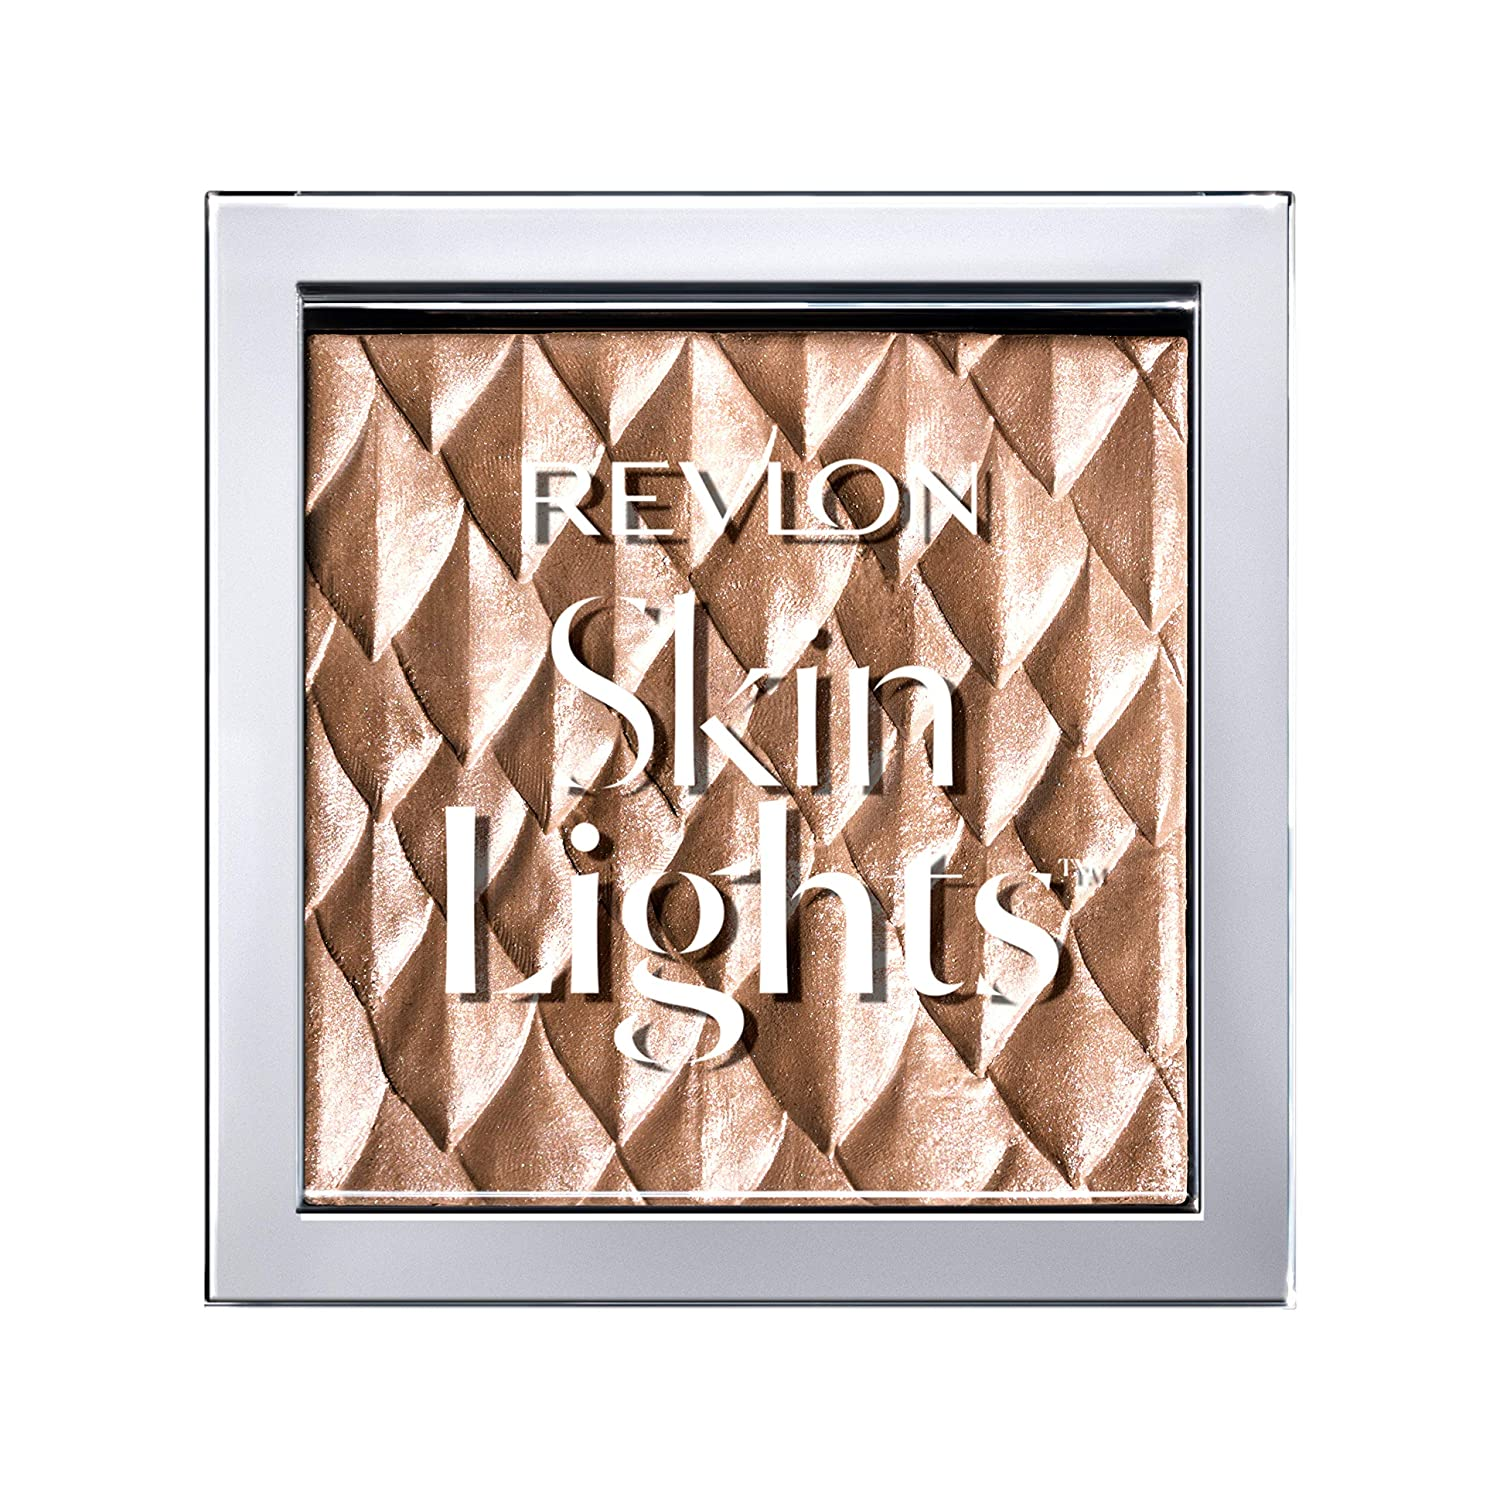 Revlon Skinlights Prismatic Highlighter, Twilight Gleam, 0.28 Oz